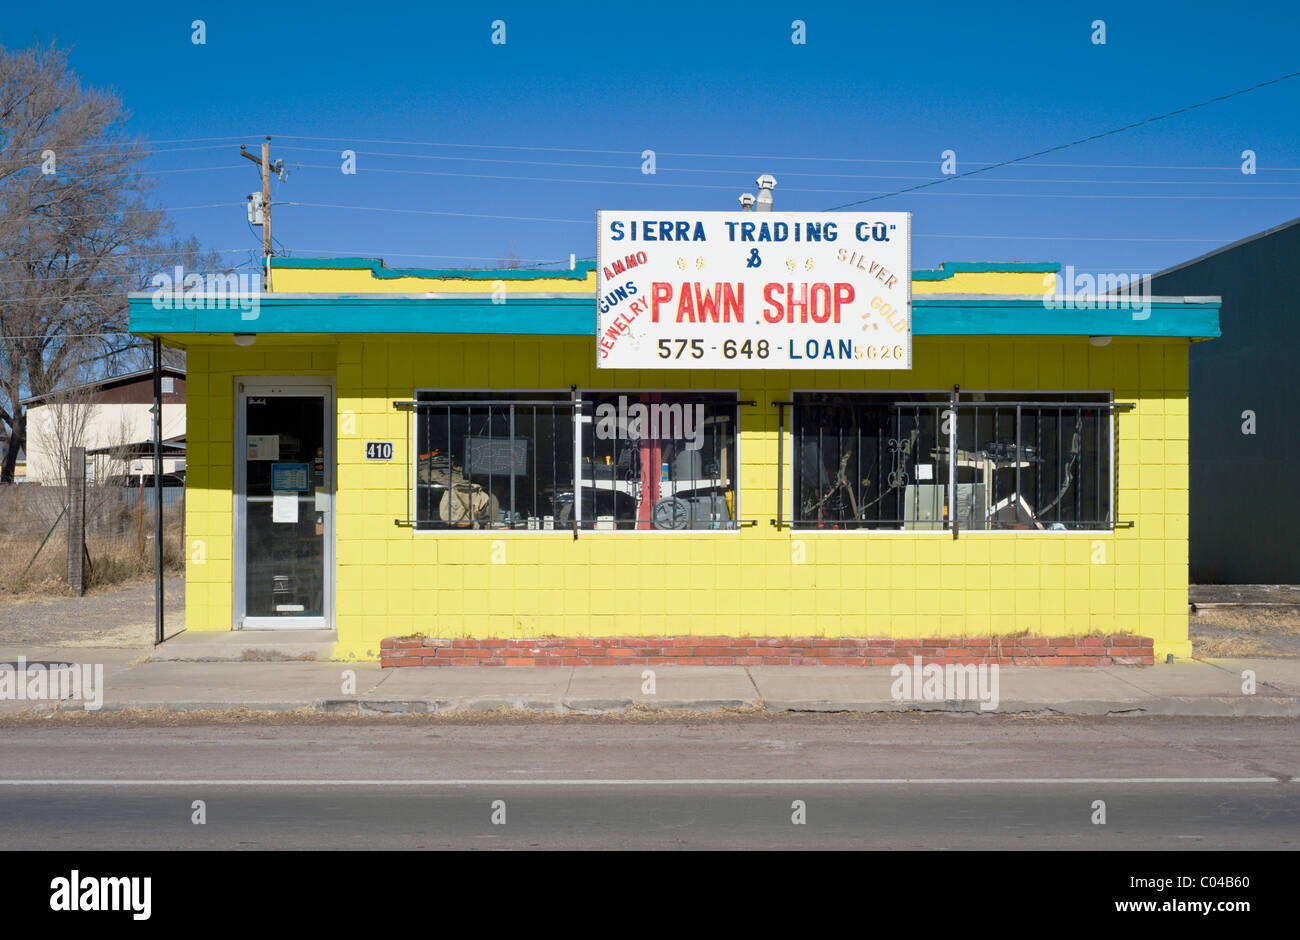 The bright yellow building of Sierra Trading Company pawn shop in Carrizozo, New Mexico. - Stock Image